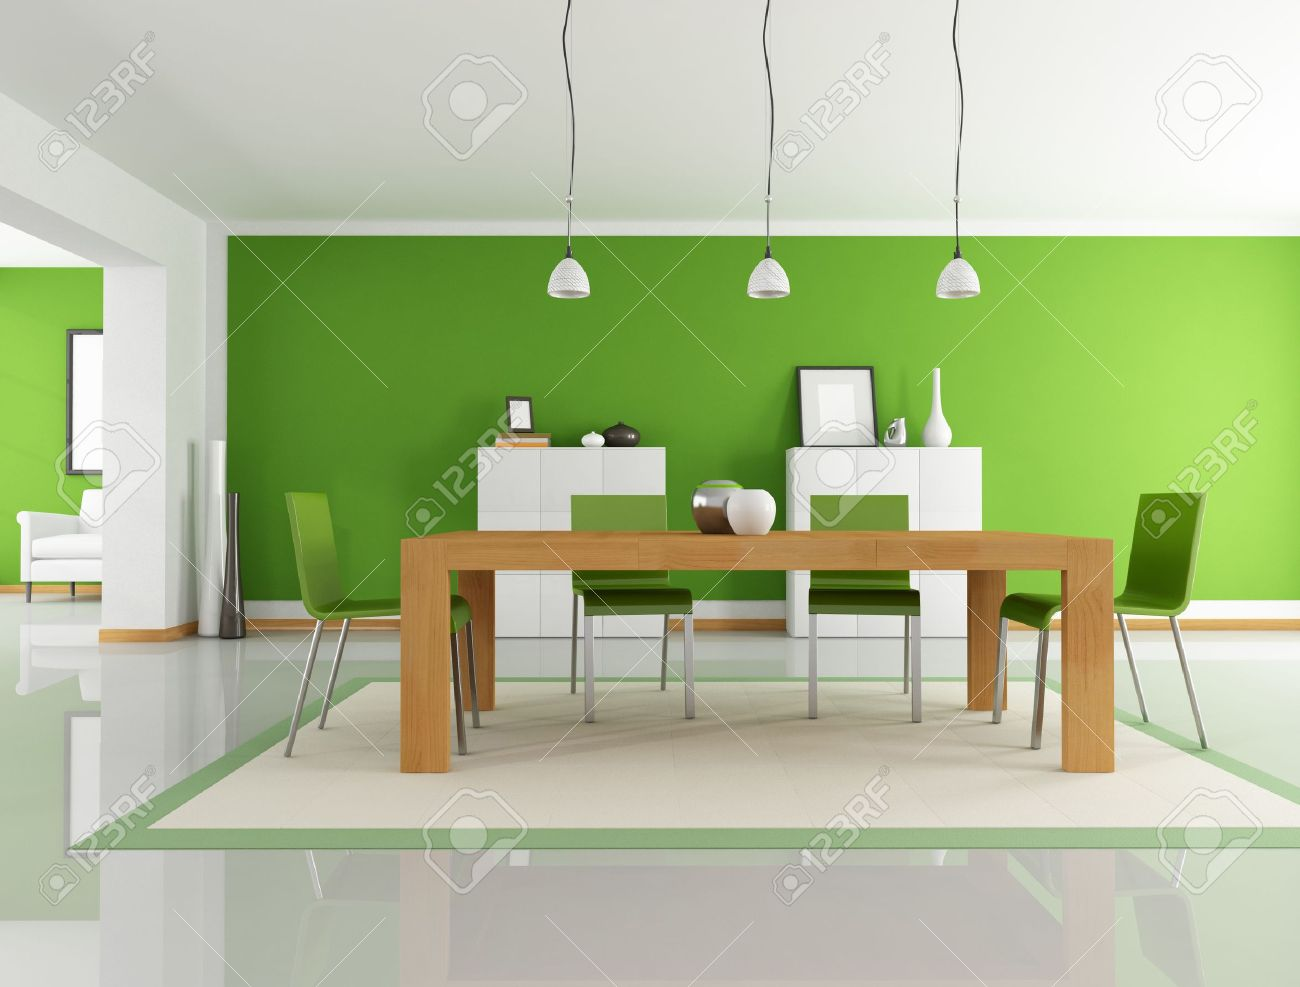 Modern dining room green - Modern Dining Room With Wooden Table And Green Chair Rendering Stock Photo 8874787